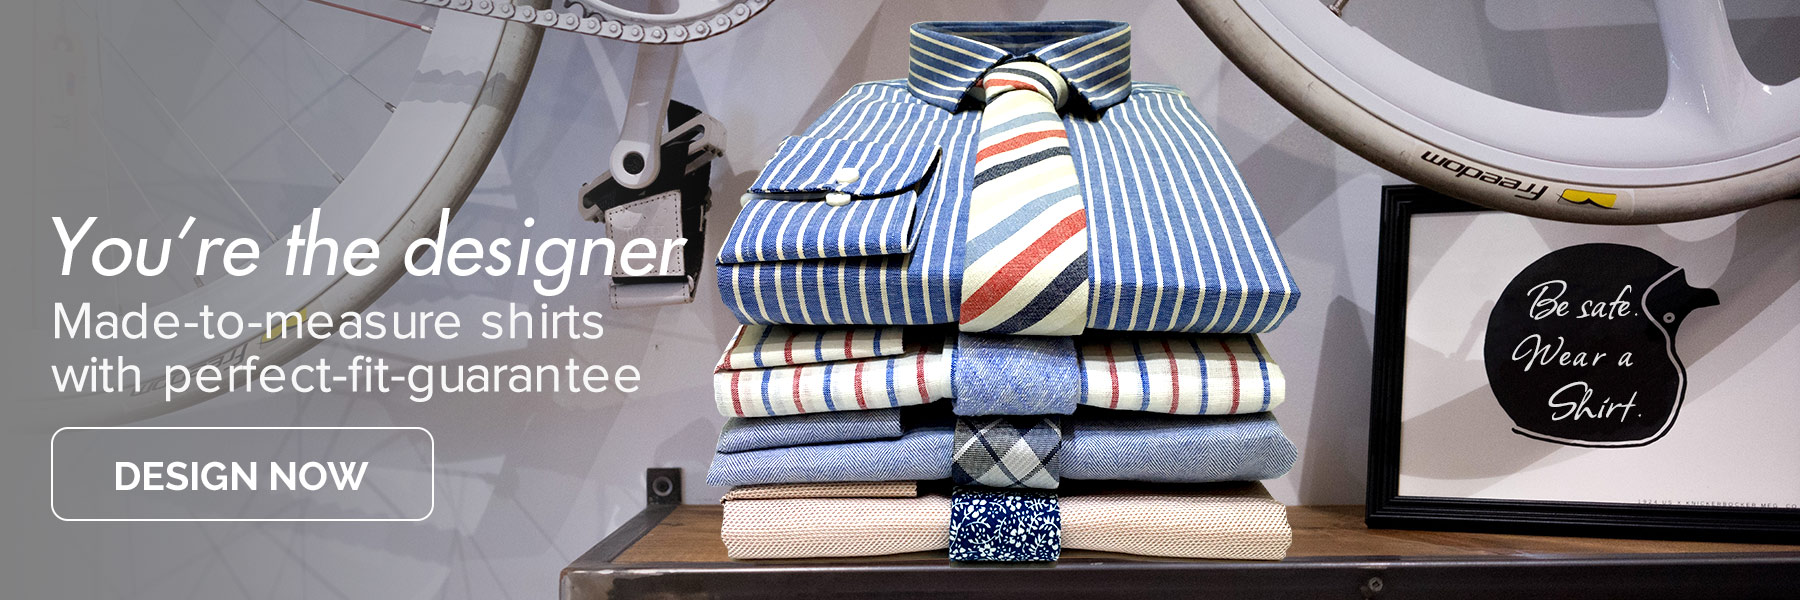 You're the designer - design your own custom dress shirt online